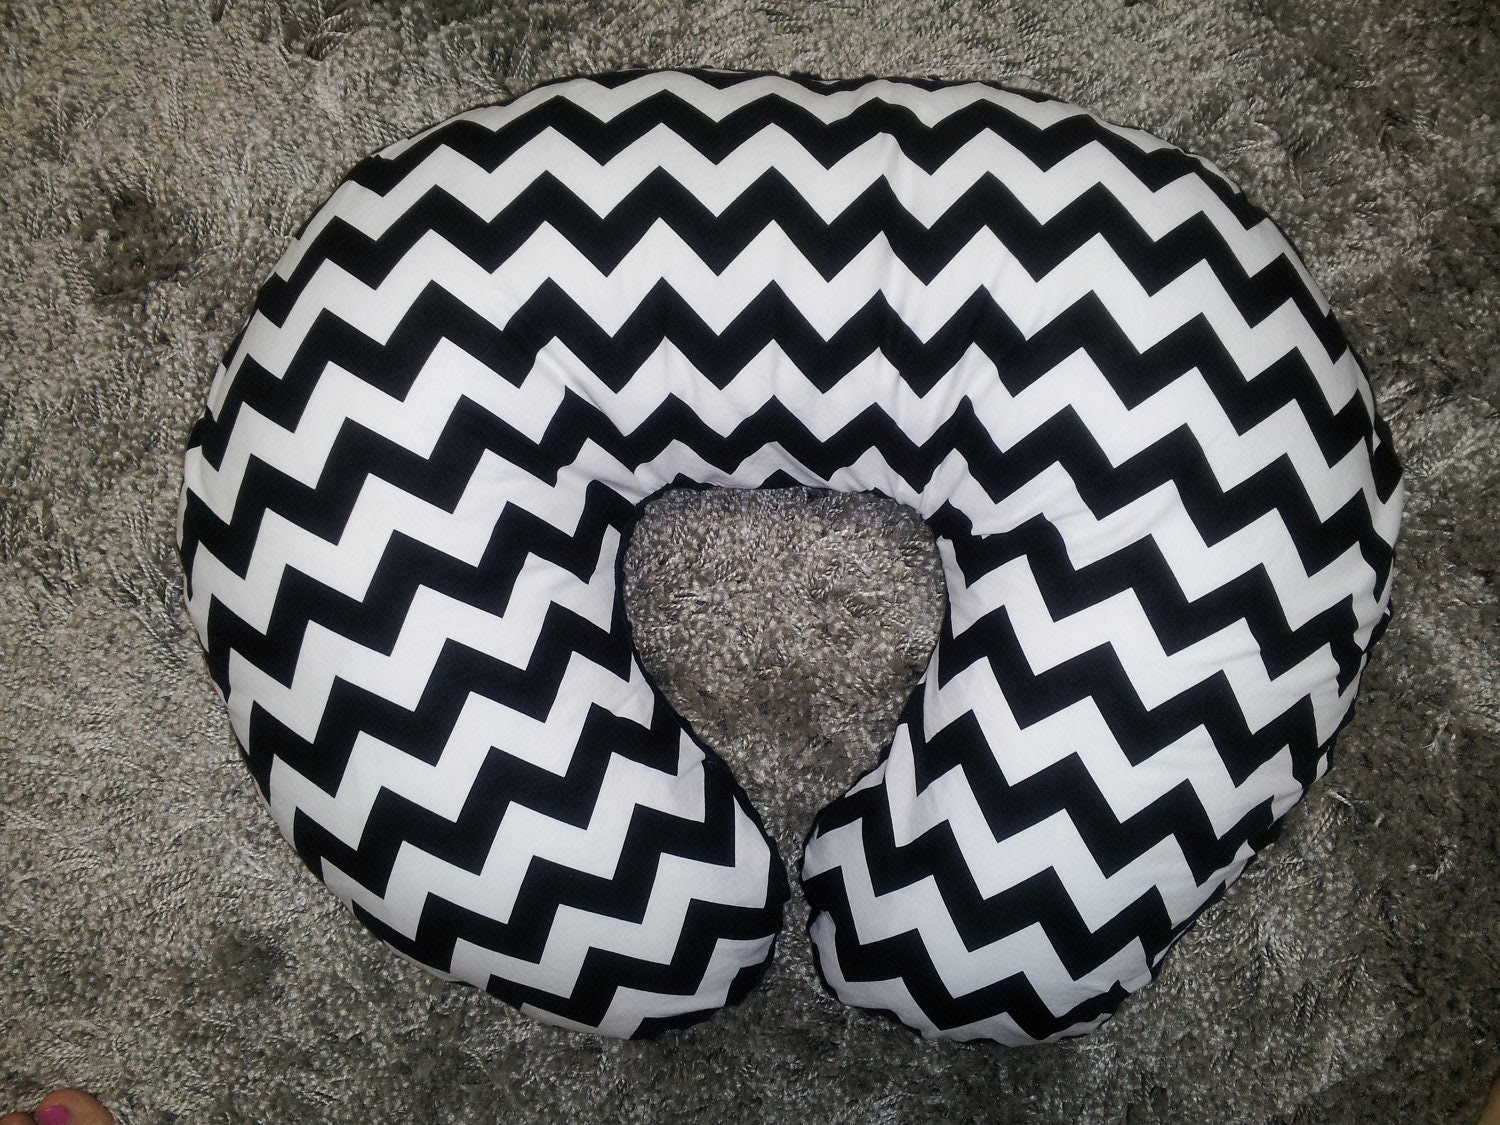 Design your own BOPPY pillow cover.  Riley Blake Chevron black and white zigzag BOPPY pillow cover without a zipper. Boy boppy, girl boppy. - babymodern